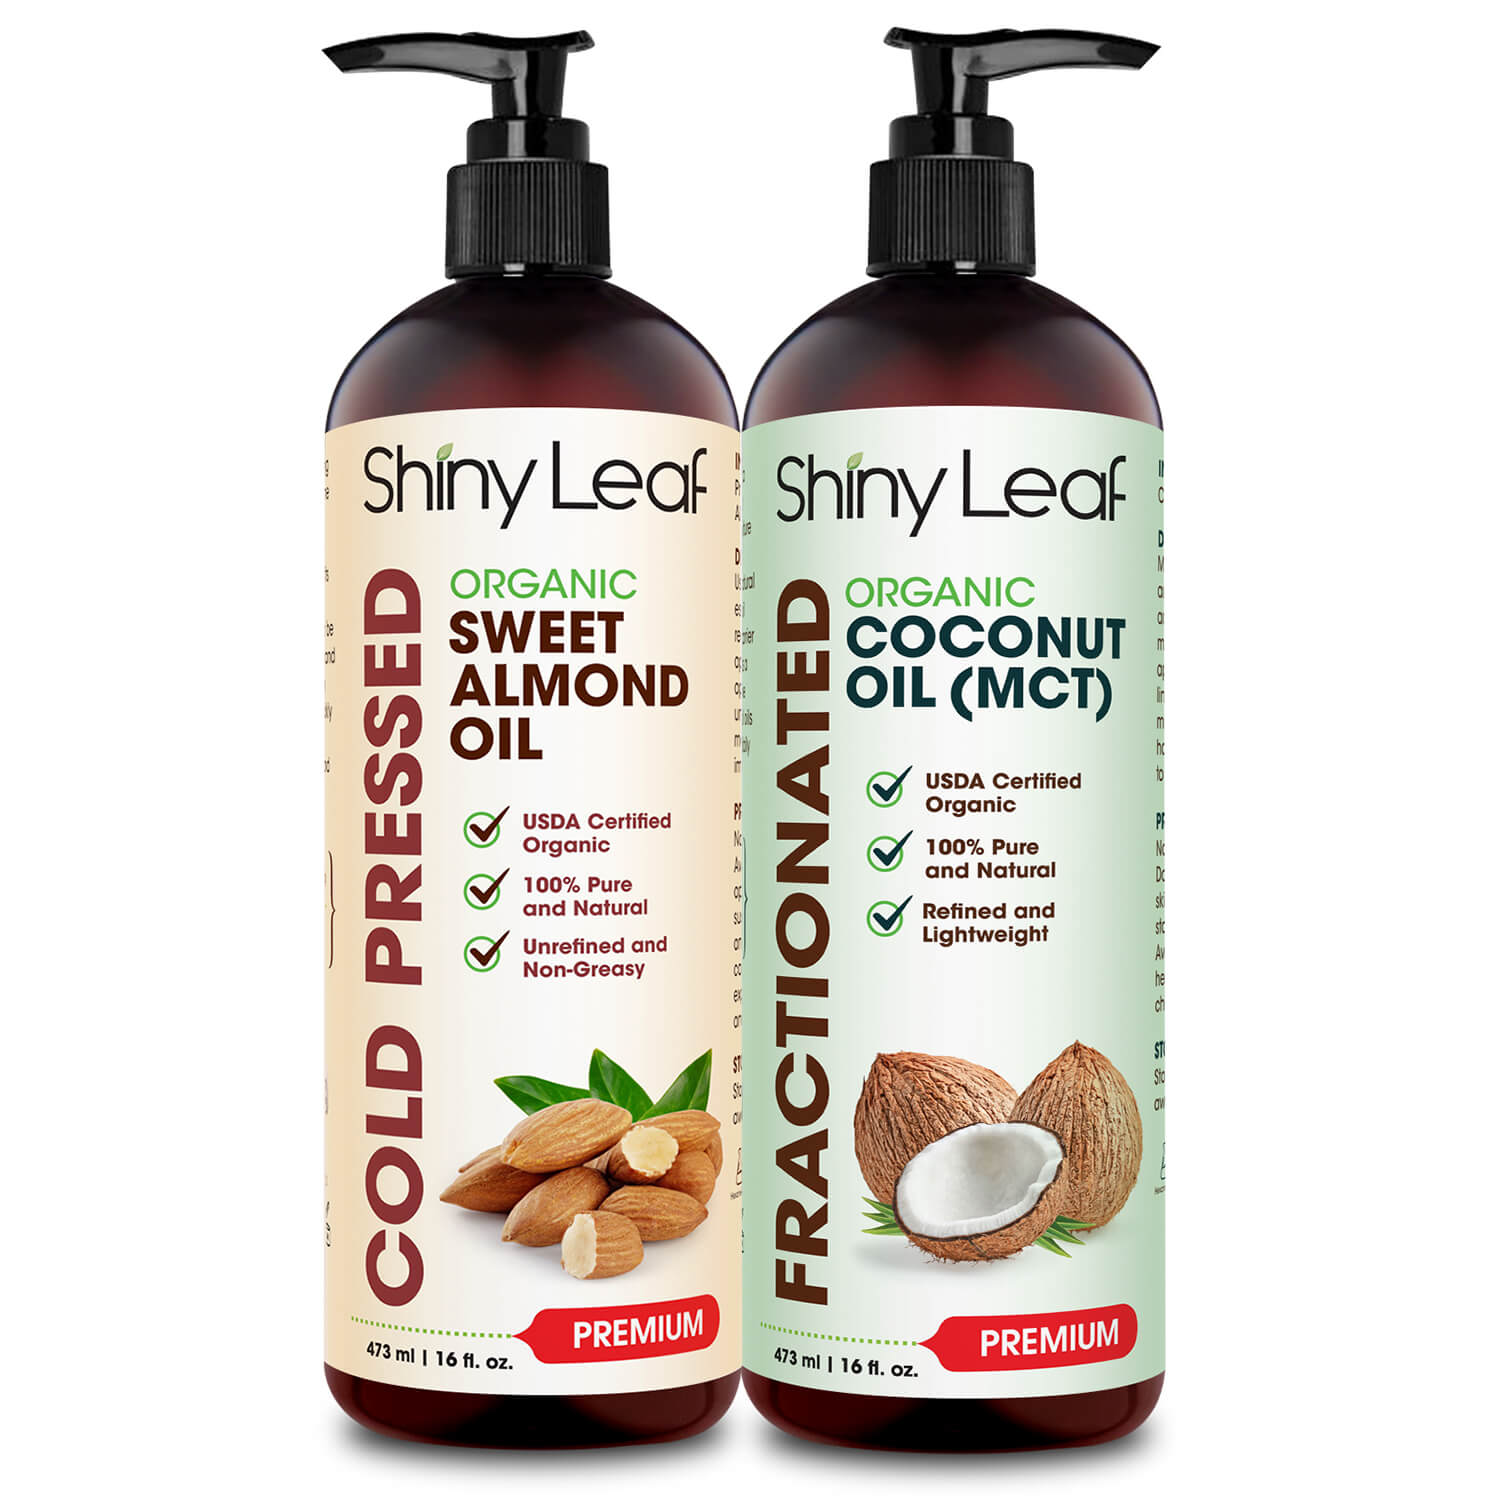 ORGANIC SWEET ALMOND OIL AND FRACTIONATED COCONUT OIL BUNDLE